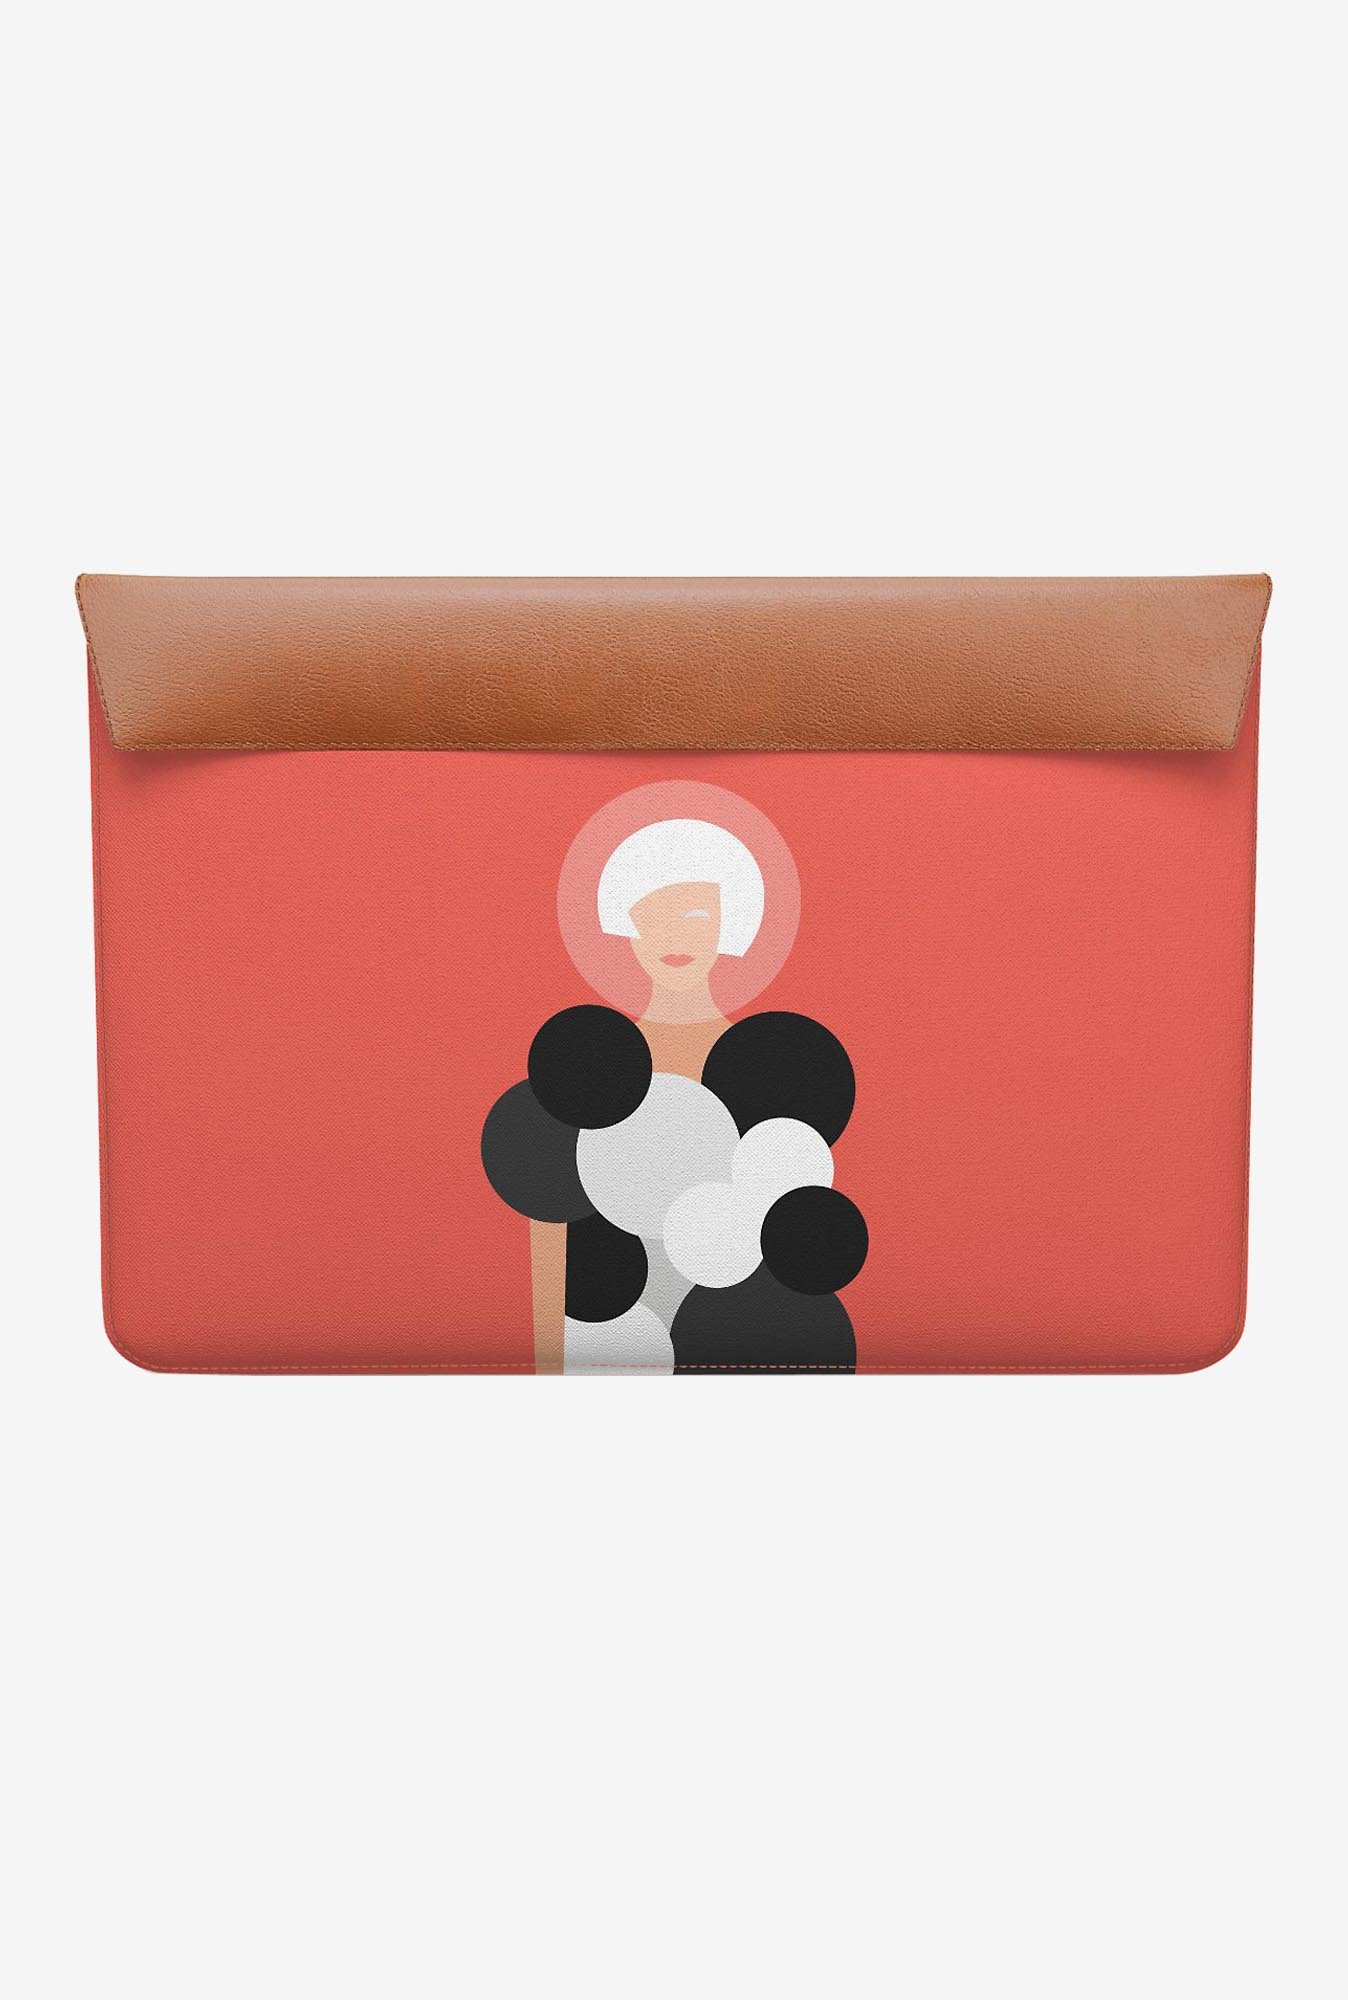 DailyObjects Space Helmet MacBook Pro 15 Envelope Sleeve